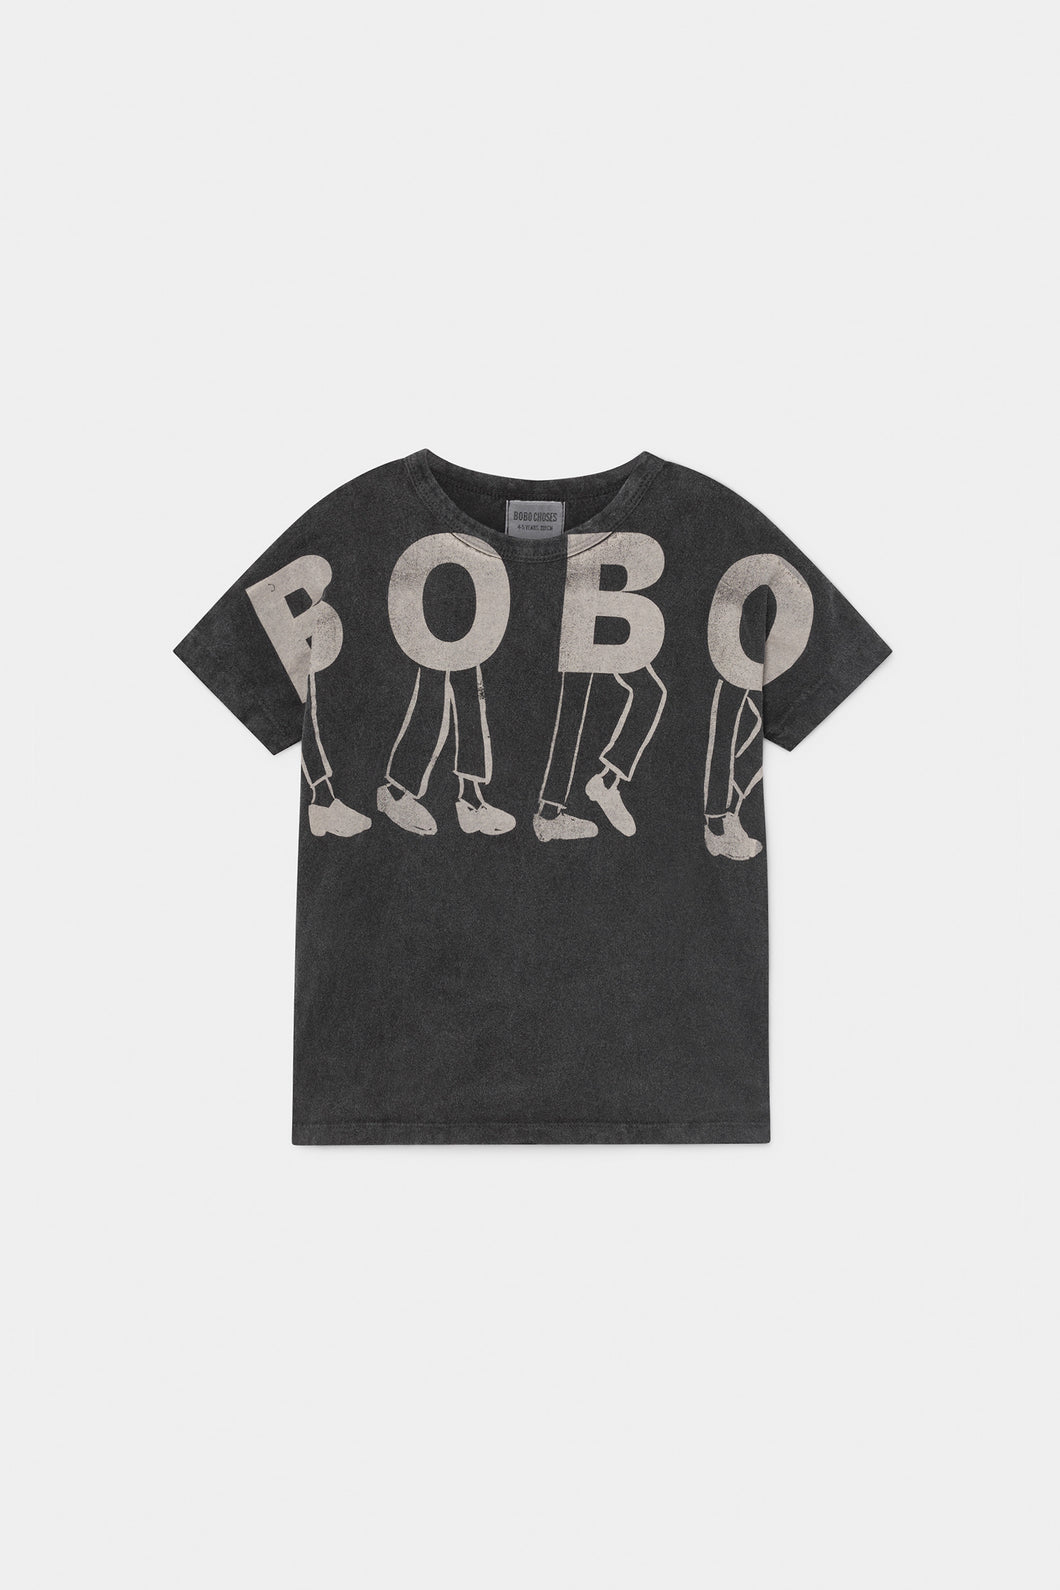 Bobo Dance T-Shirt